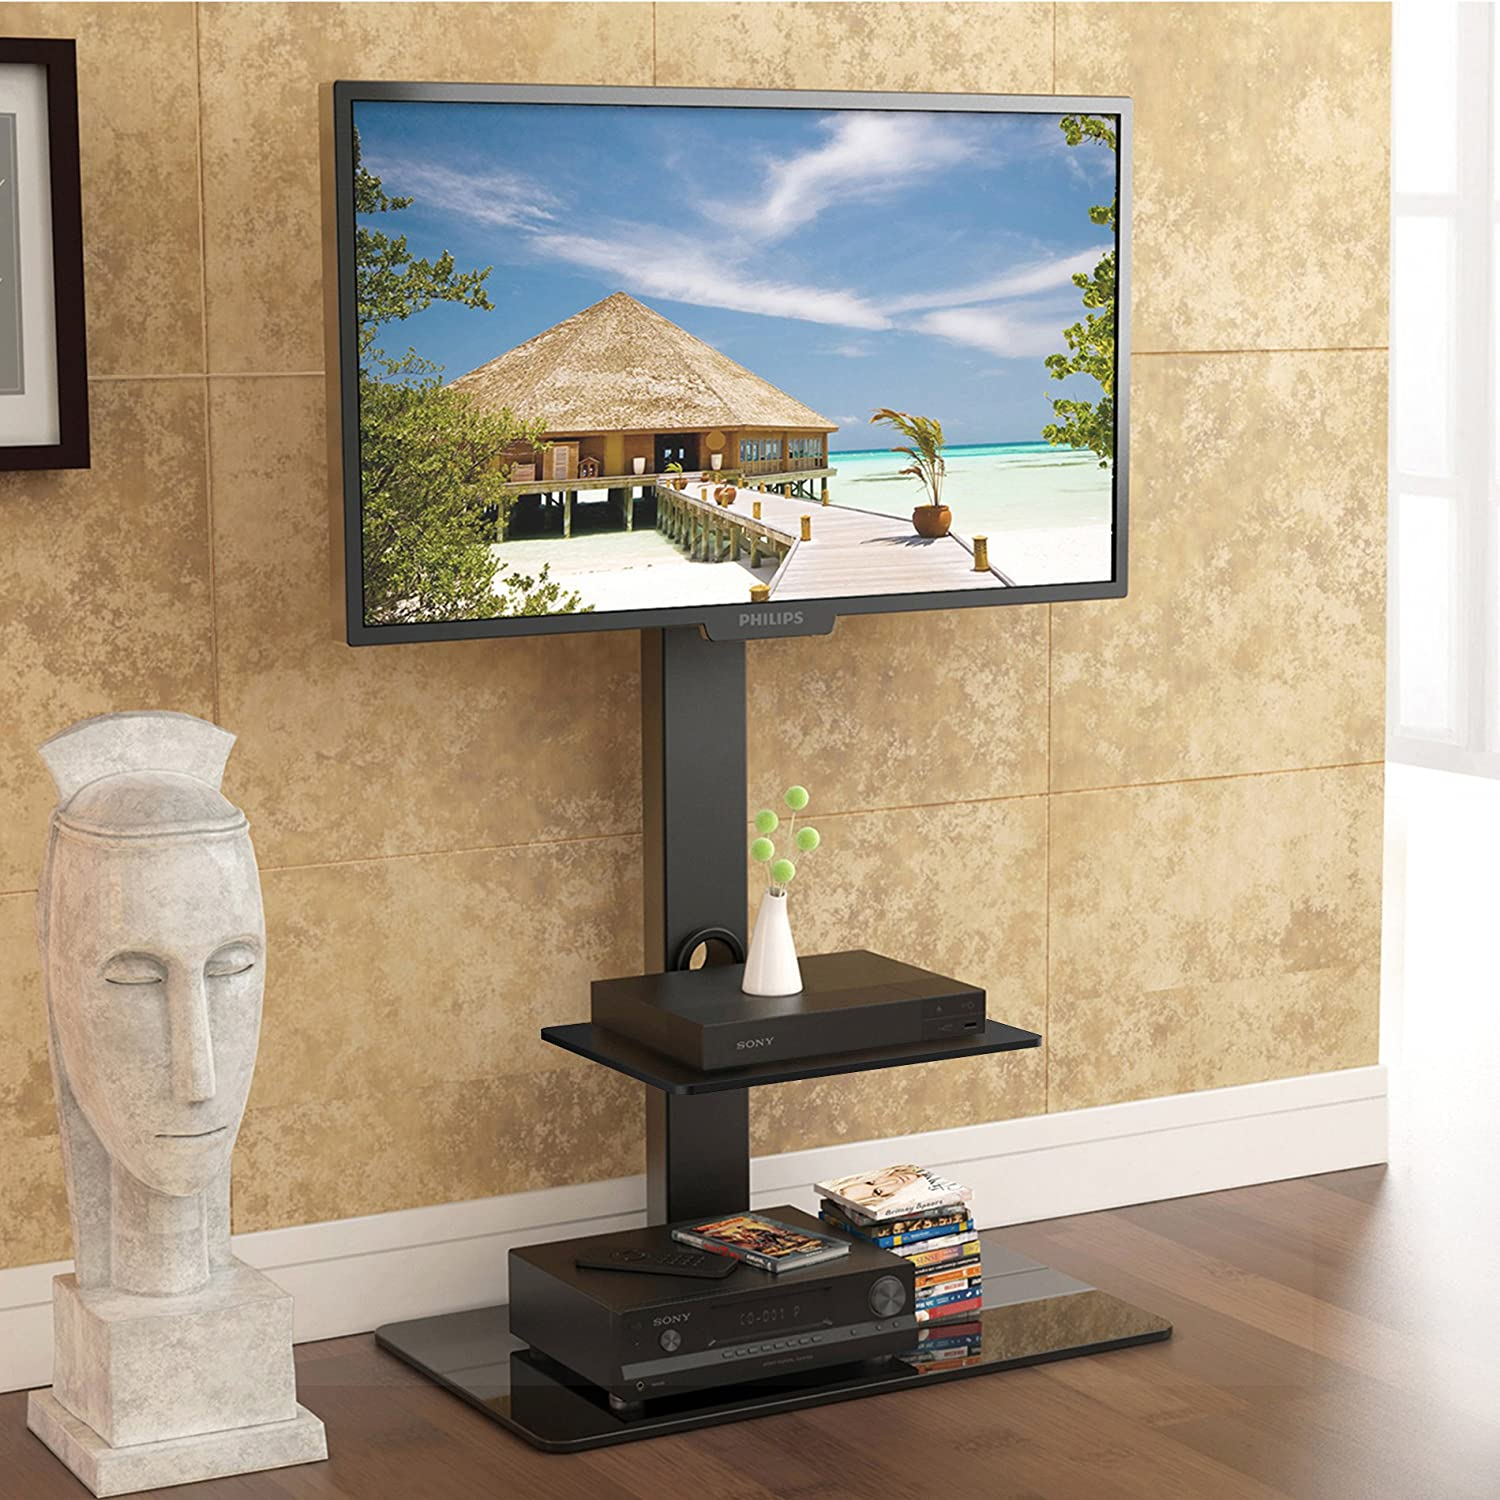 Amazon.com: Ameriwood Home Galaxy II TV Stand for TVs up to 32 ...